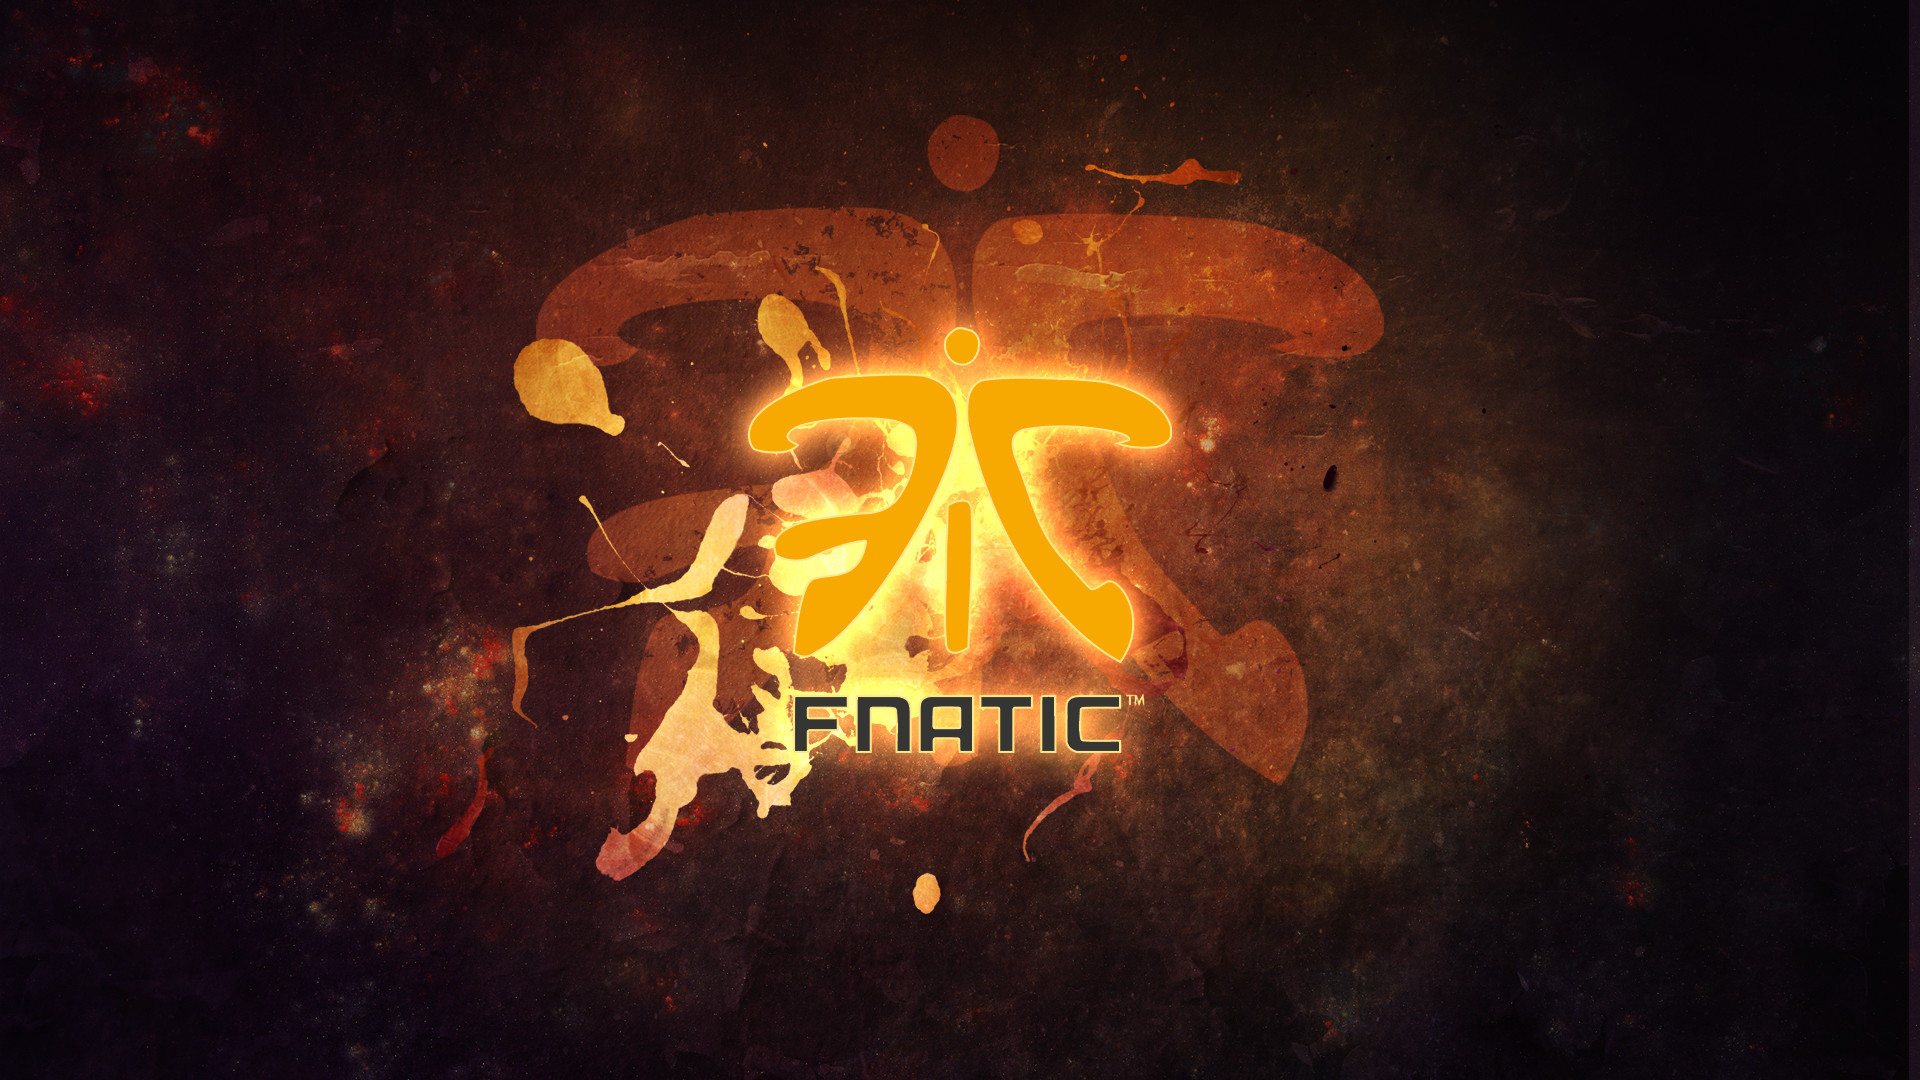 Fnatic Wallpapers 87 Images